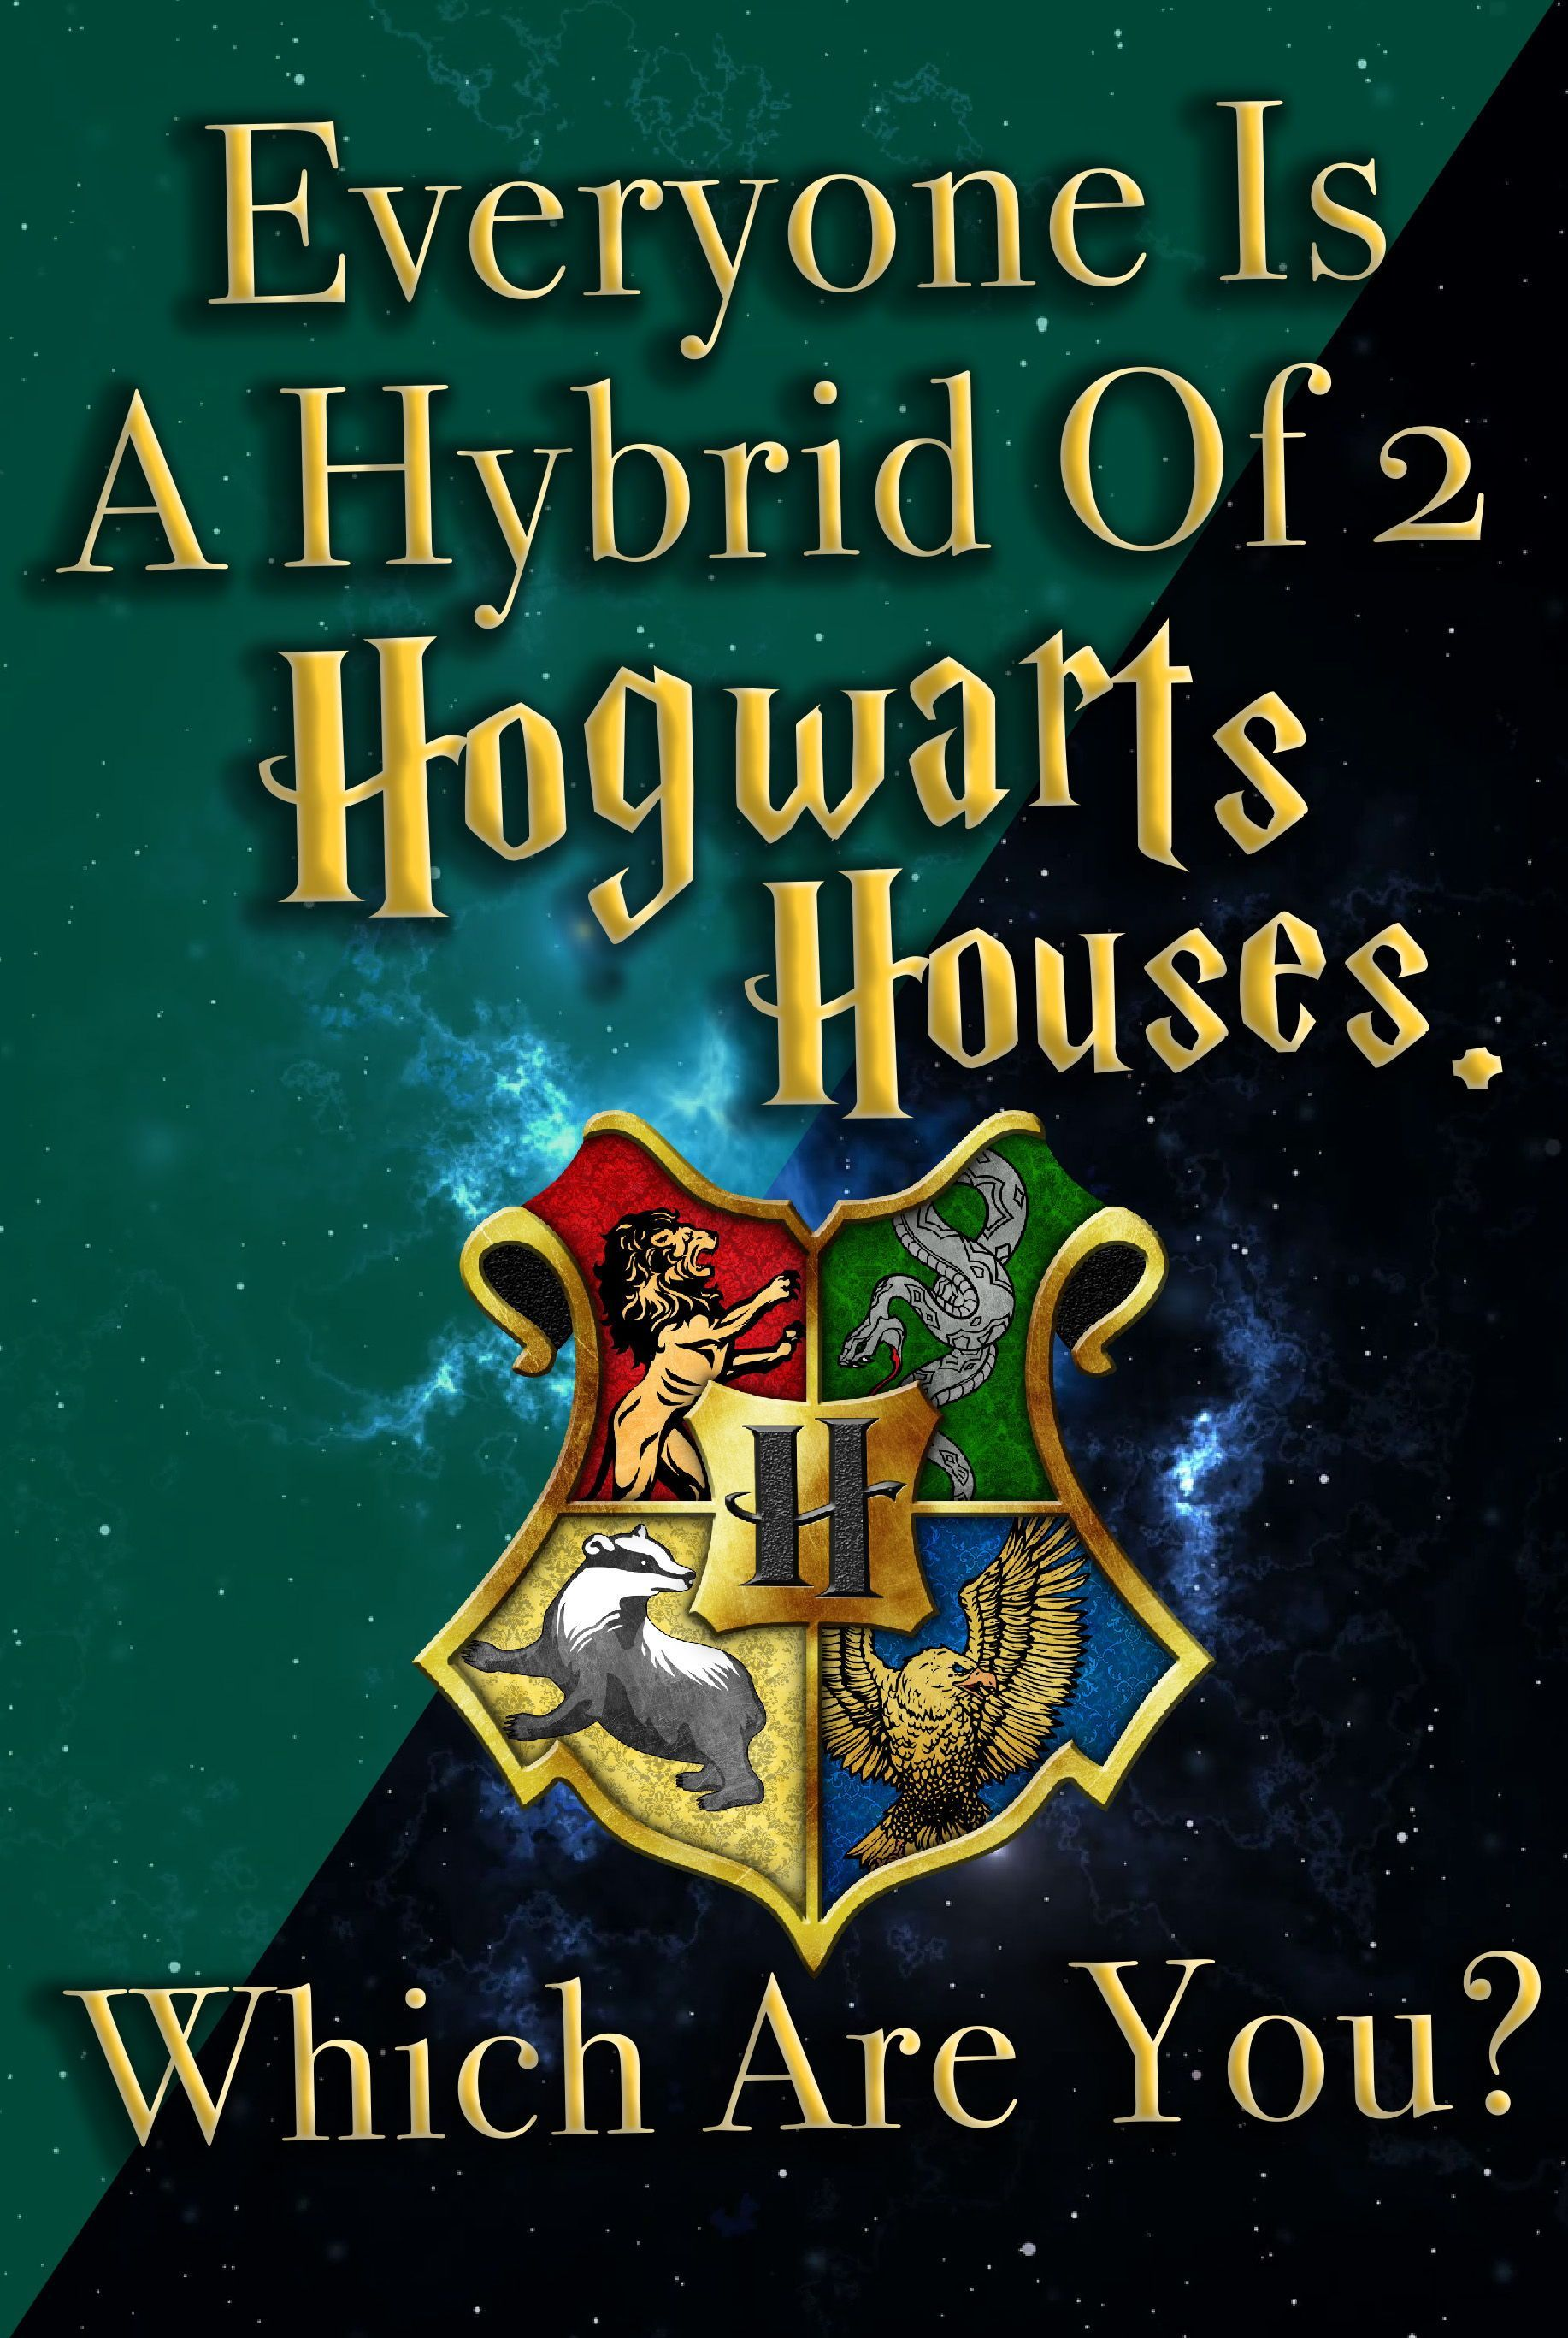 Hogwarts Quiz Take This Harry Potter Hybrid Quiz To Determine Which Two Hogwarts Houses Best Mat Harry Potter Quiz Harry Potter House Quiz Harry Potter Houses